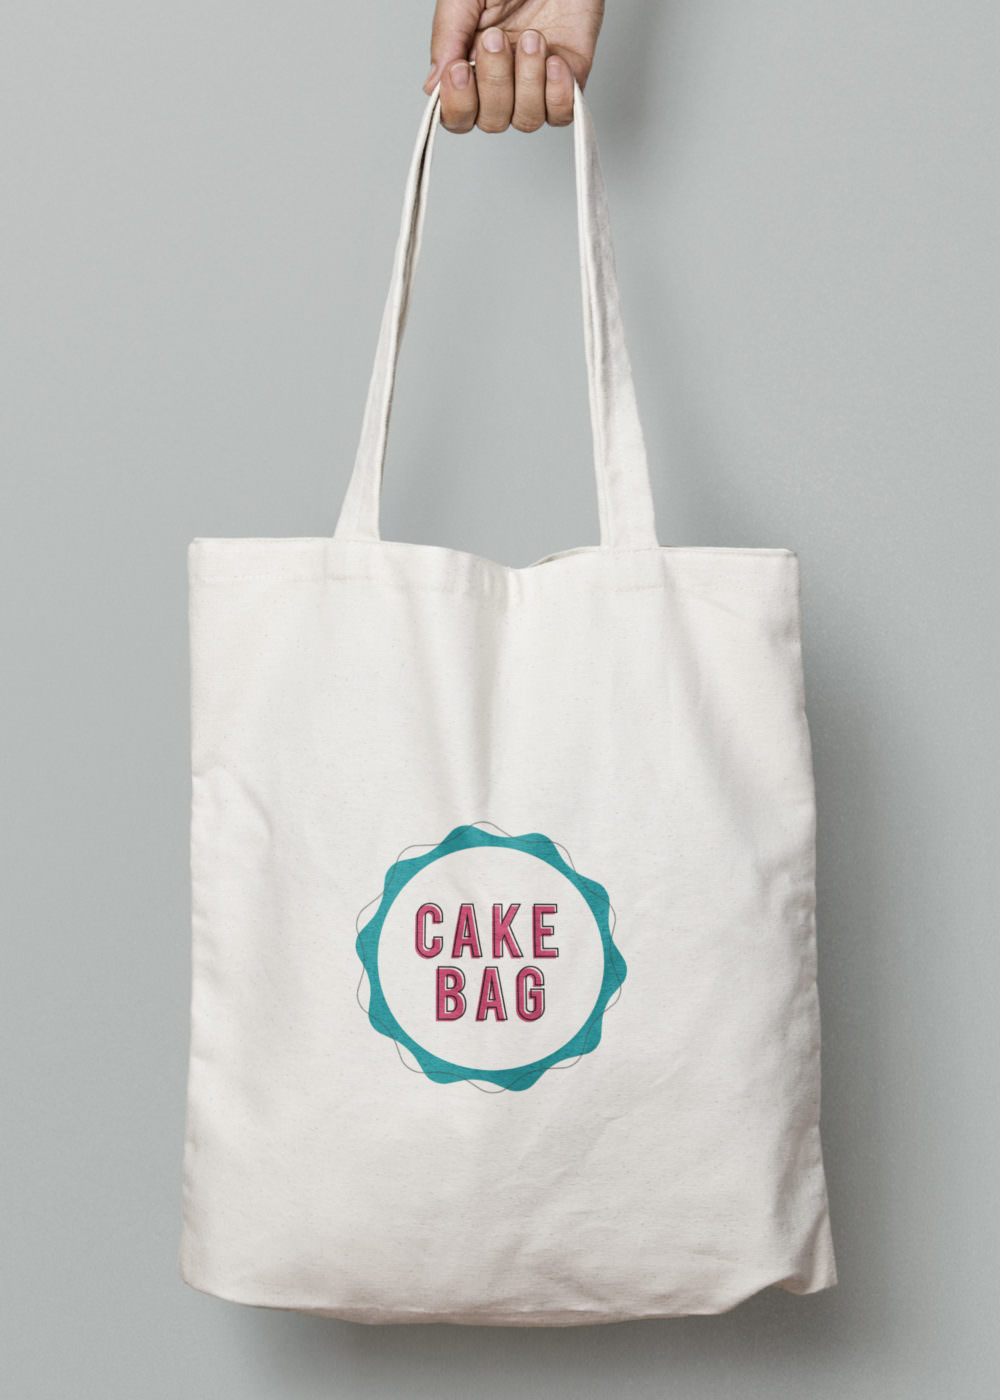 Cake Bag - Web Design, Branding & Photography In Shropshire